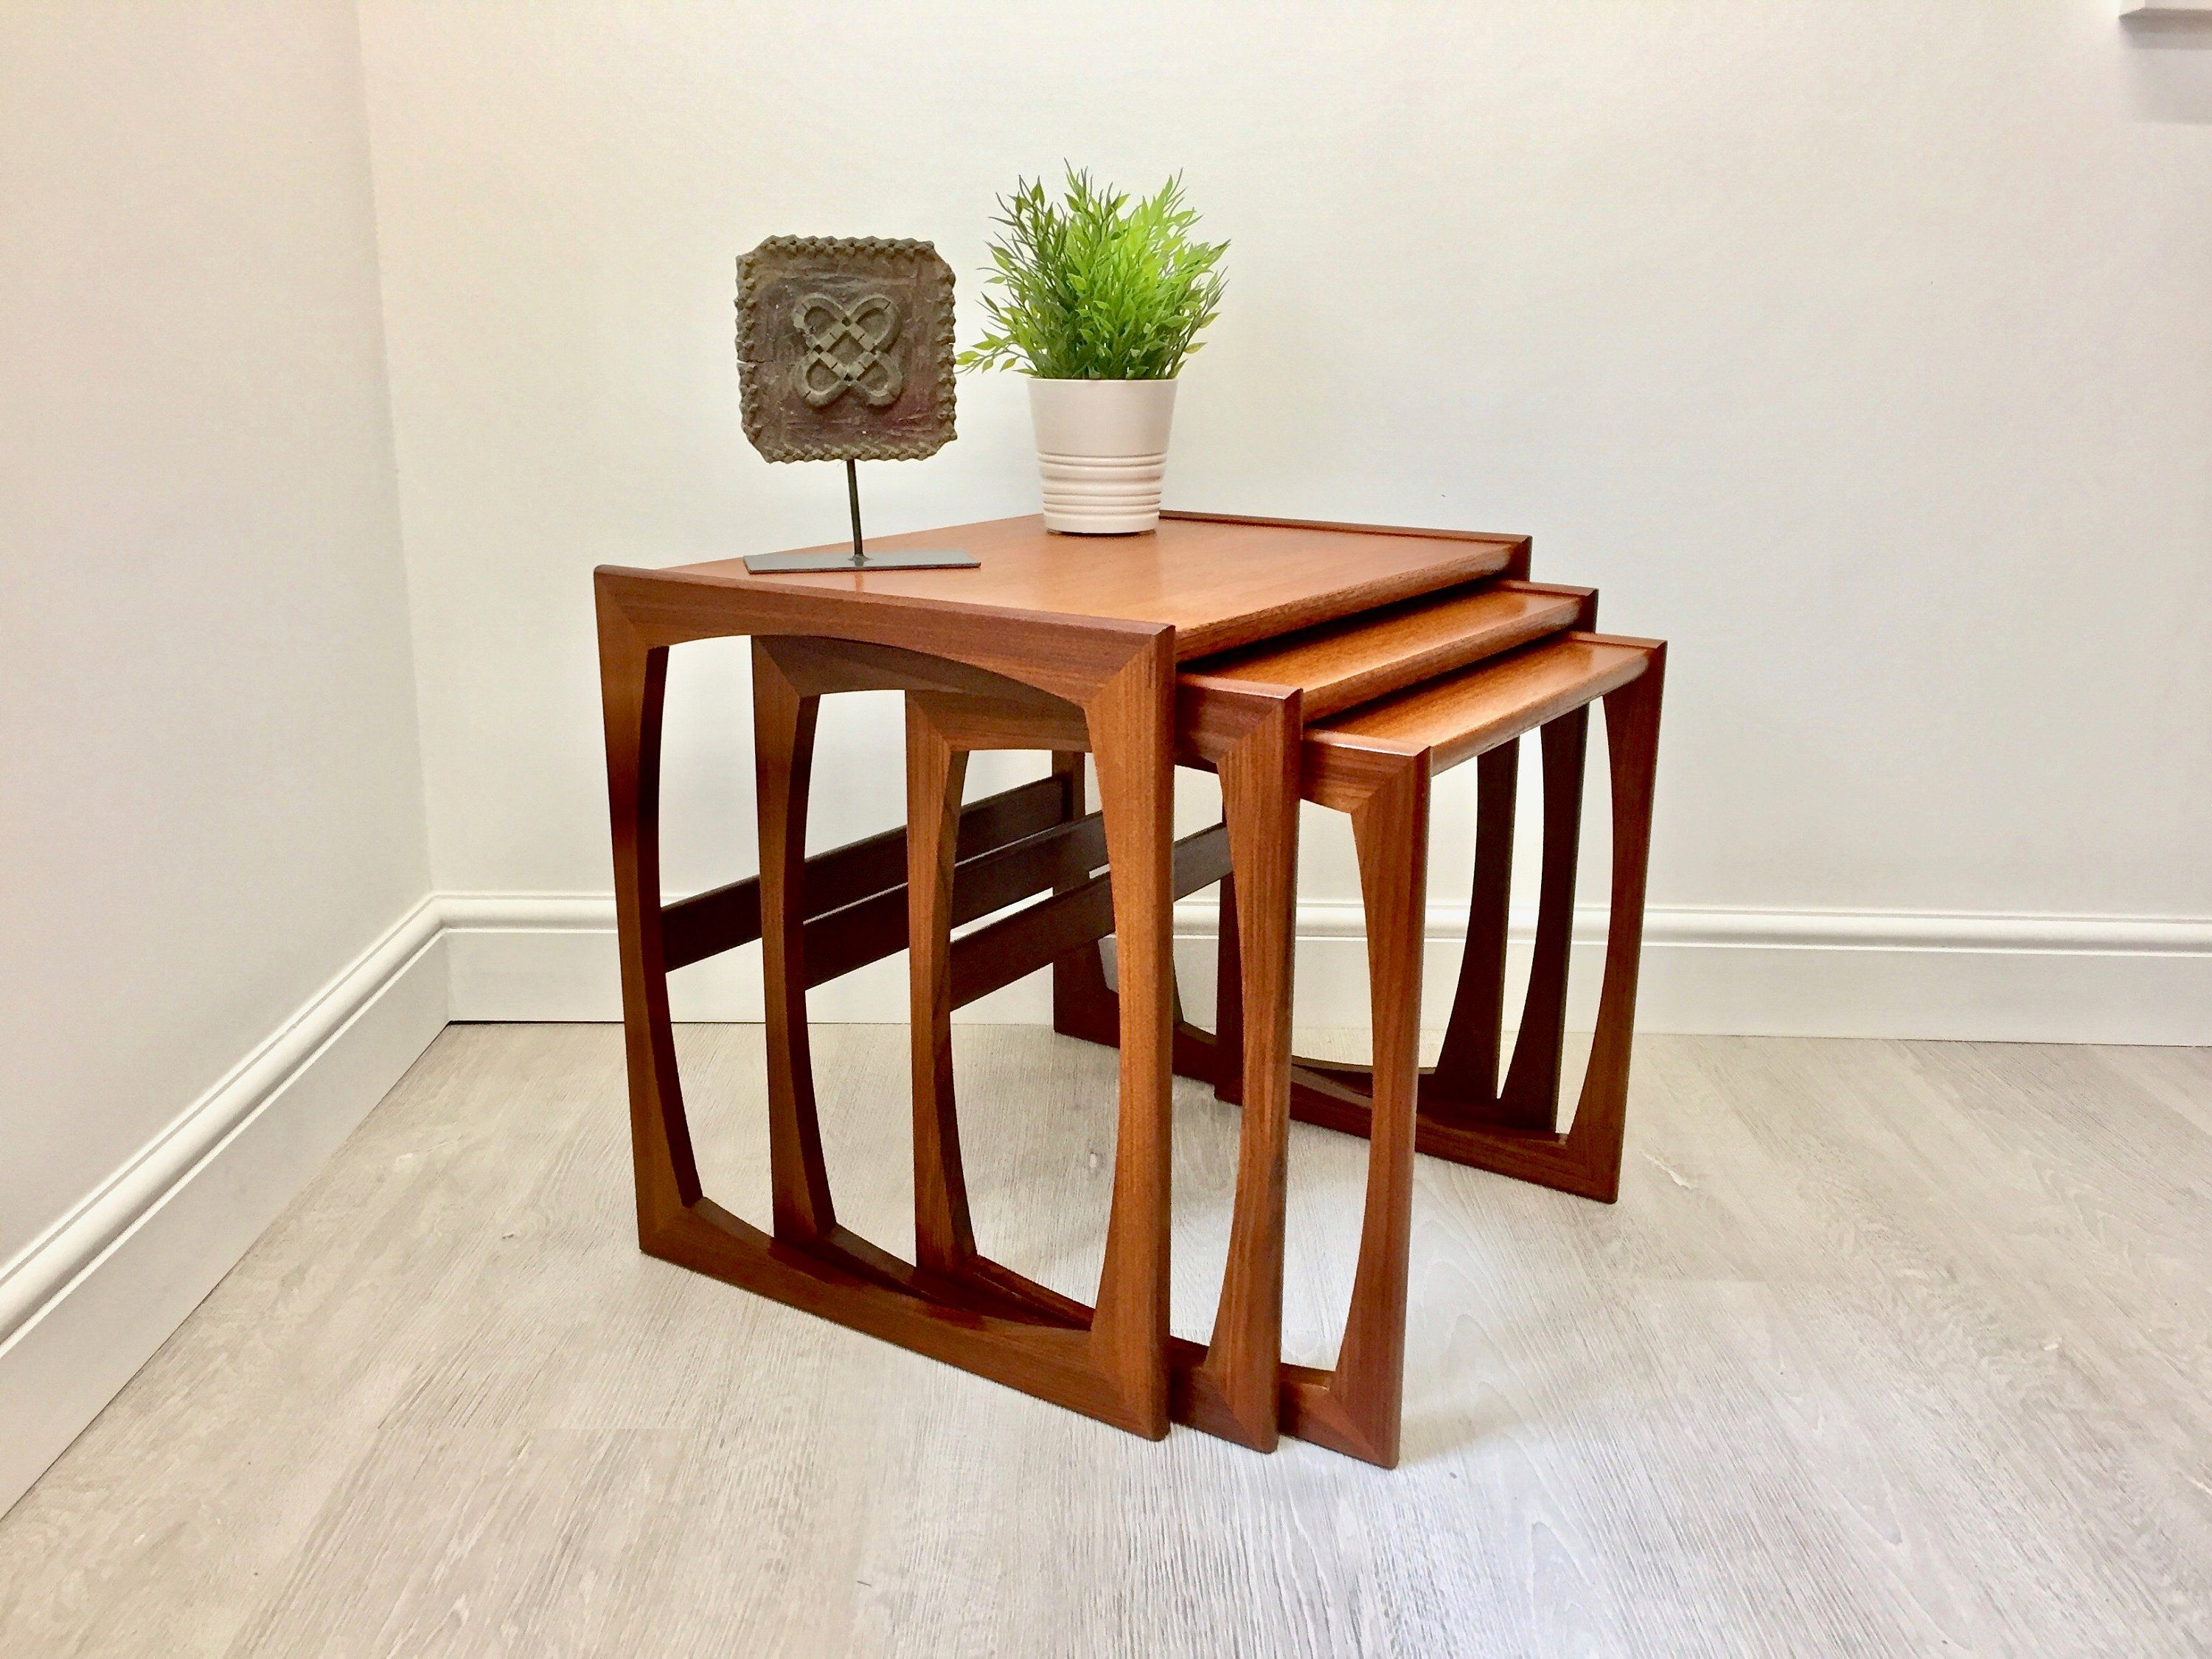 G Plan Quadrille Nest Of Tables G Plan Coffee Tables Vintage Mid Century Coffee Table Coffee Table Vintage G Plan Coffee Table